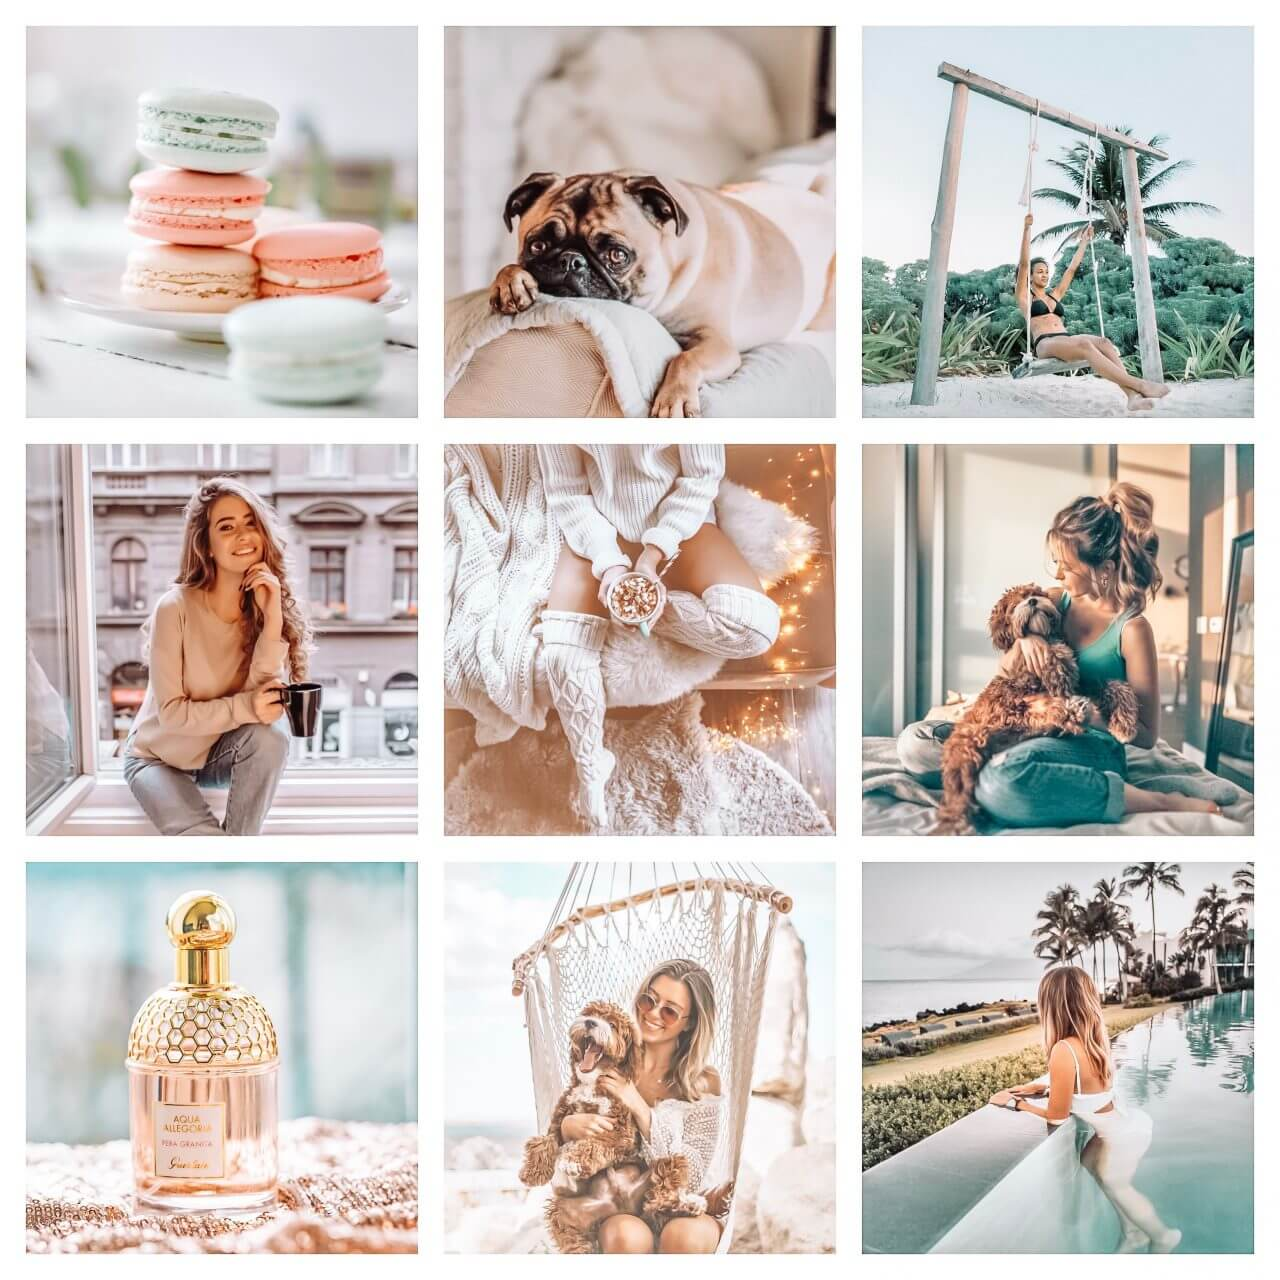 Bright Indoor moodboard preset filters Pixgrade for mobile and desktop